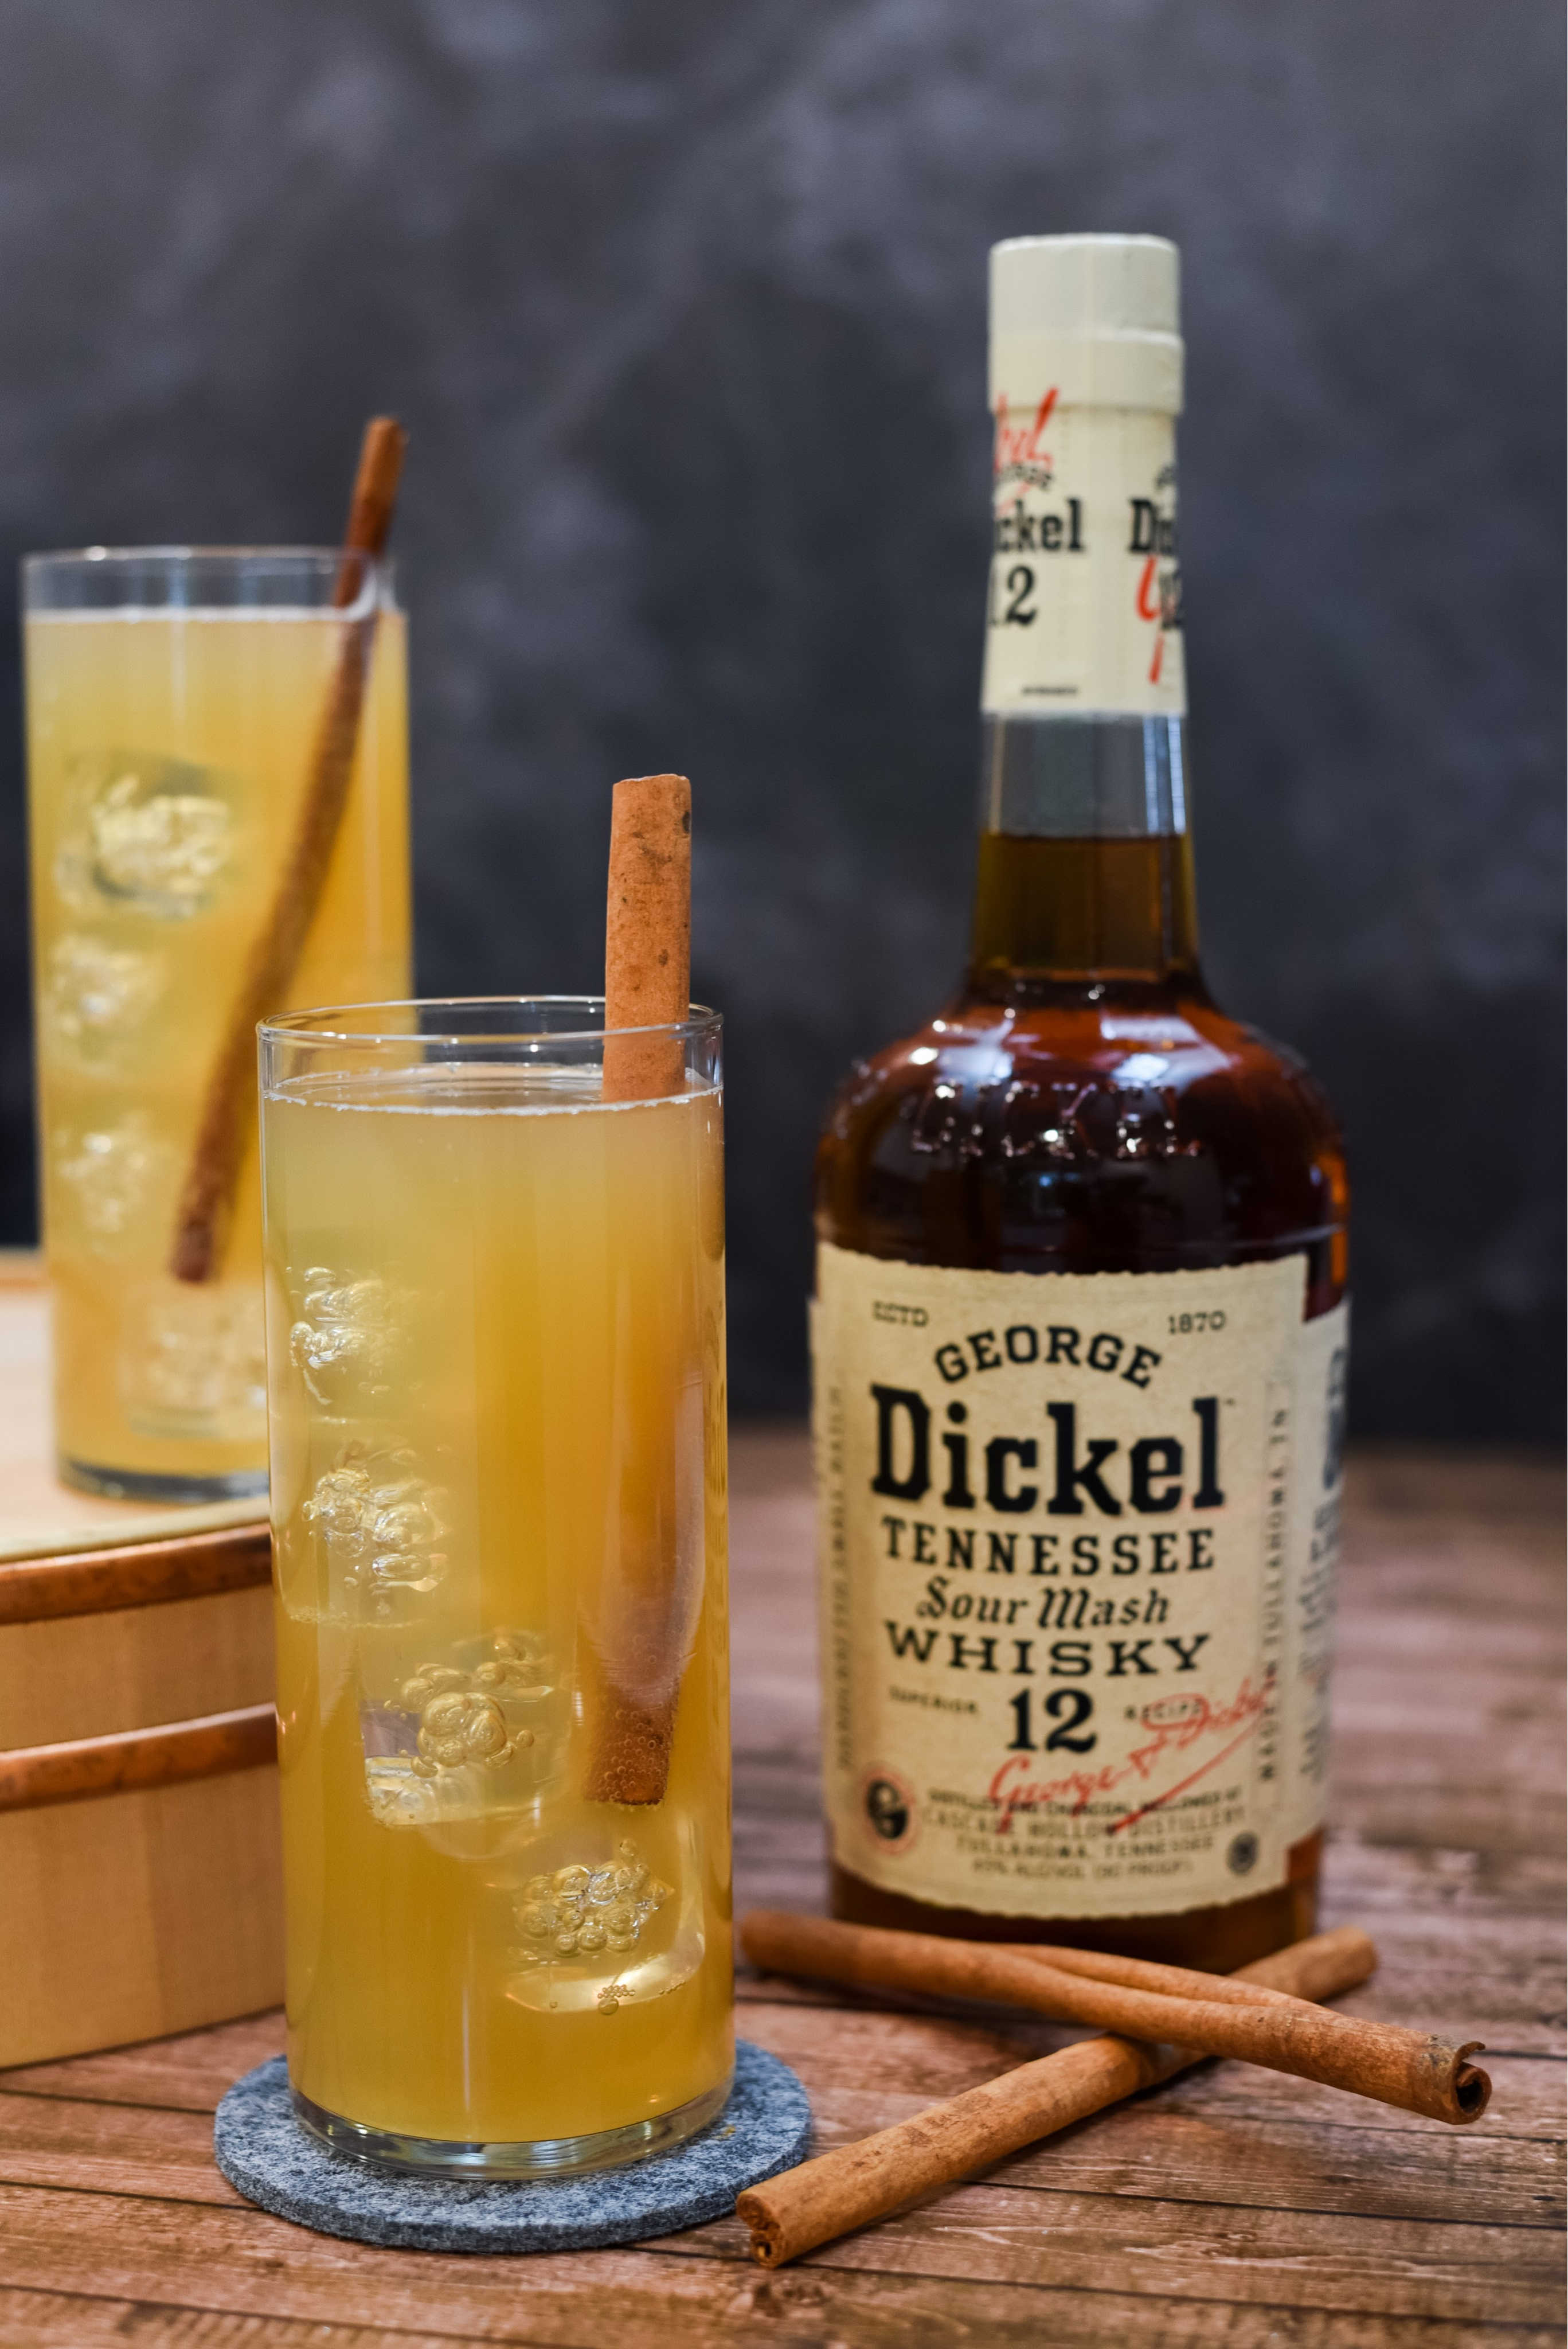 Apple Cocktail in front of George Dickel bottle